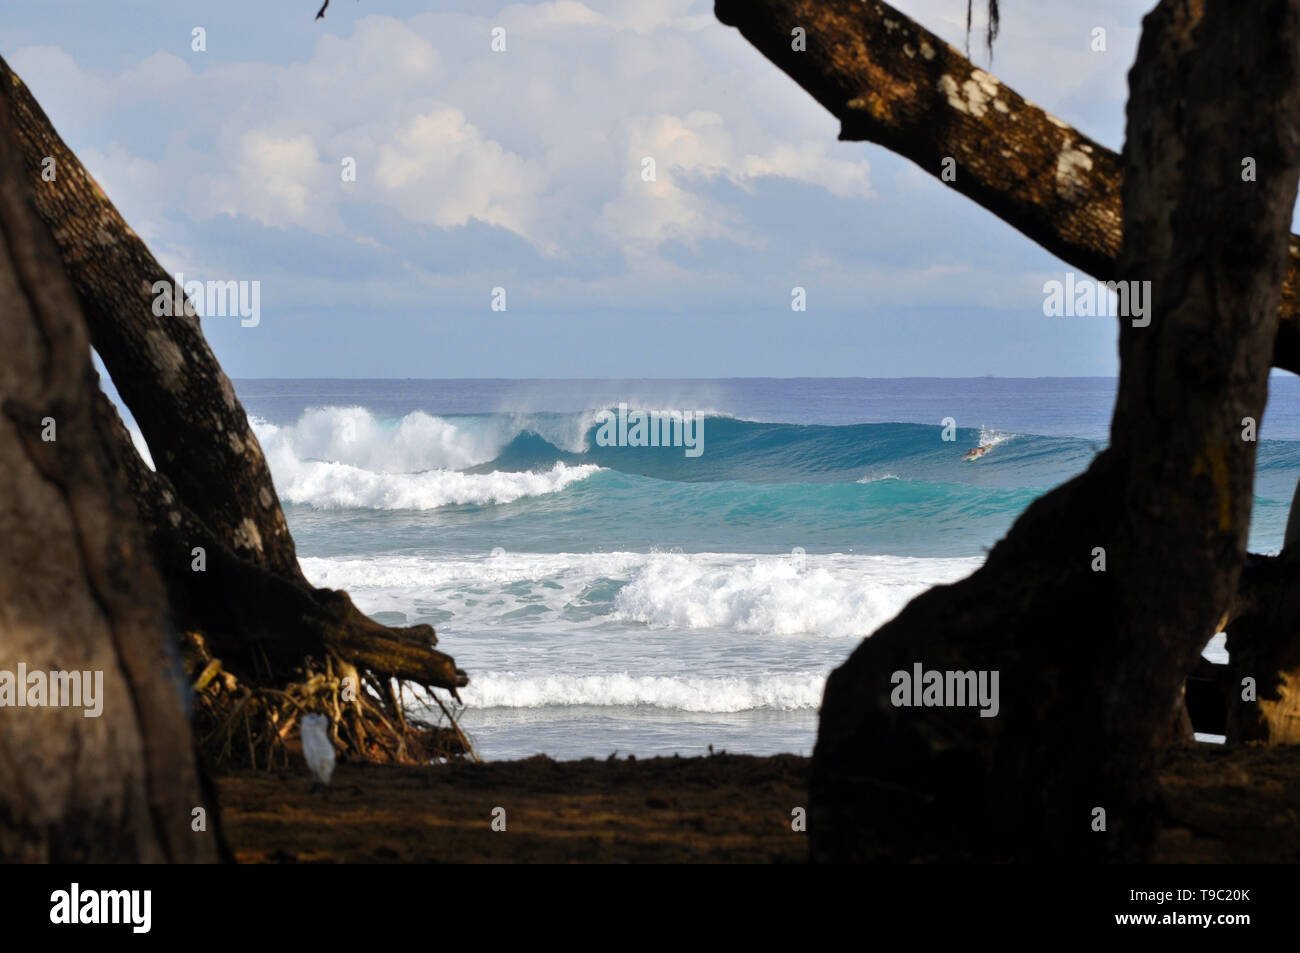 Best surf spot in the north coast of the Dominican Republic Stock Photo